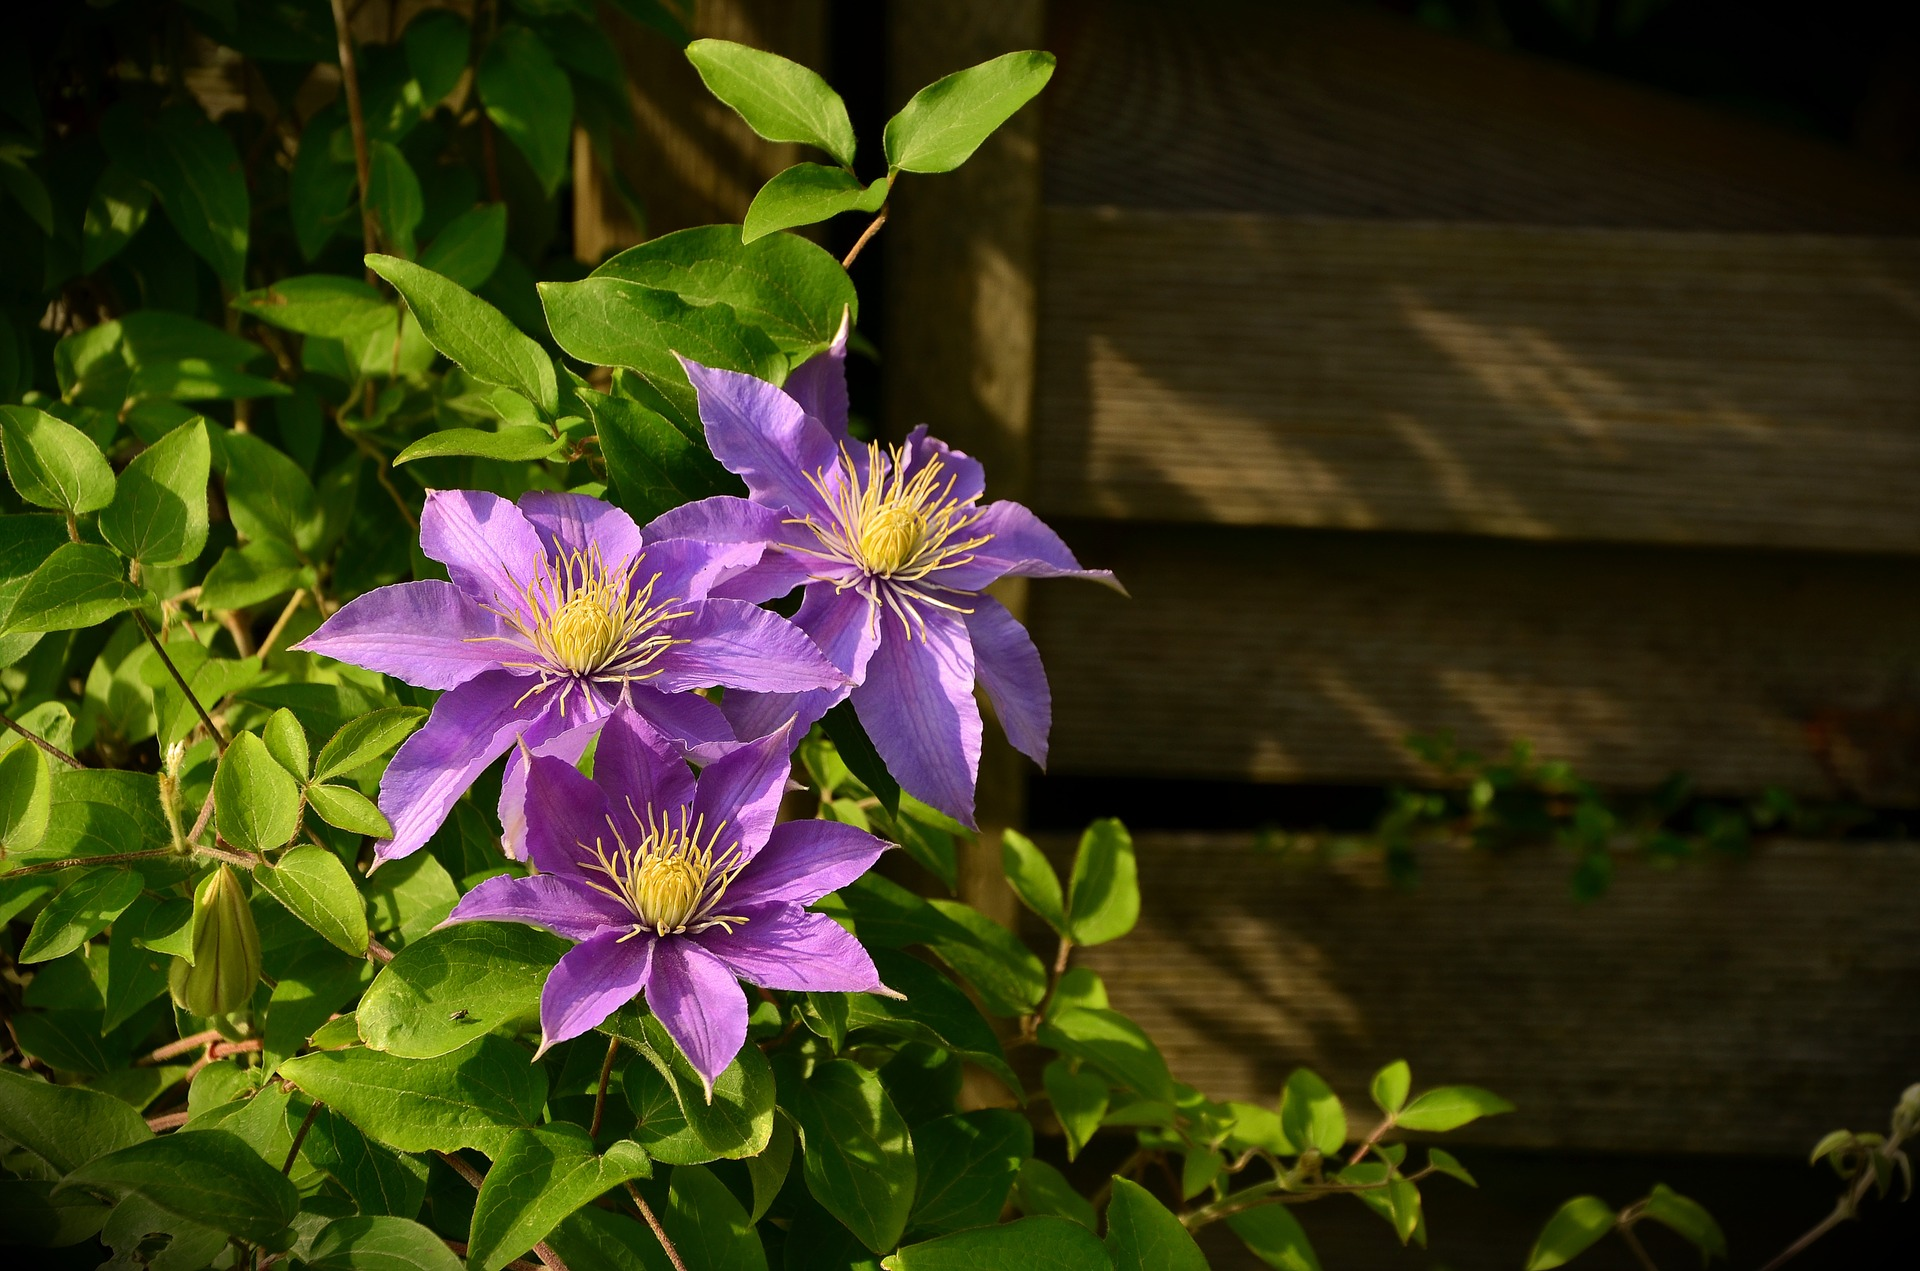 Clematis are easy to grow. Most are not aggressive vines and can be grown on simple trellises against the house for vertical enjoyment.